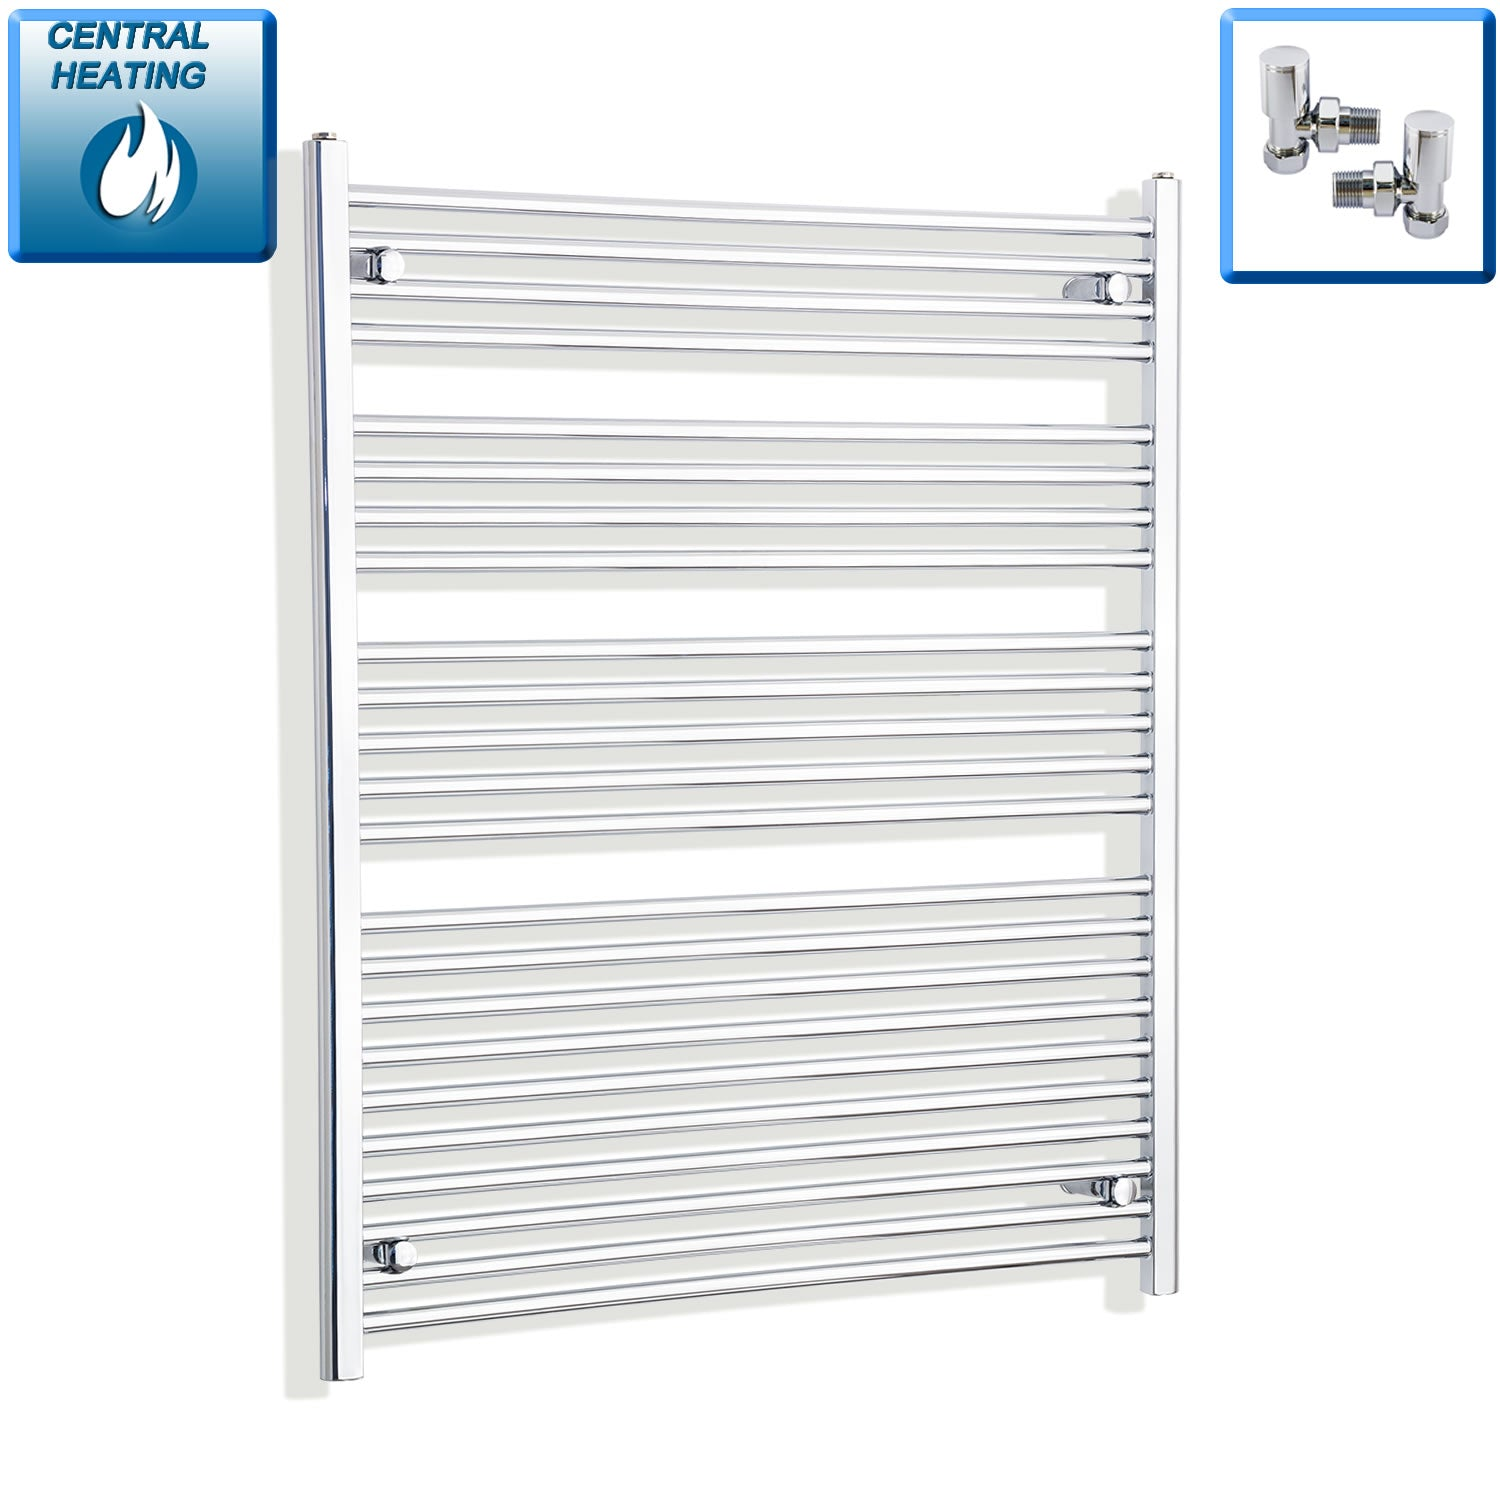 1000mm Wide 1200mm High Chrome Towel Rail Radiator With Angled Valve